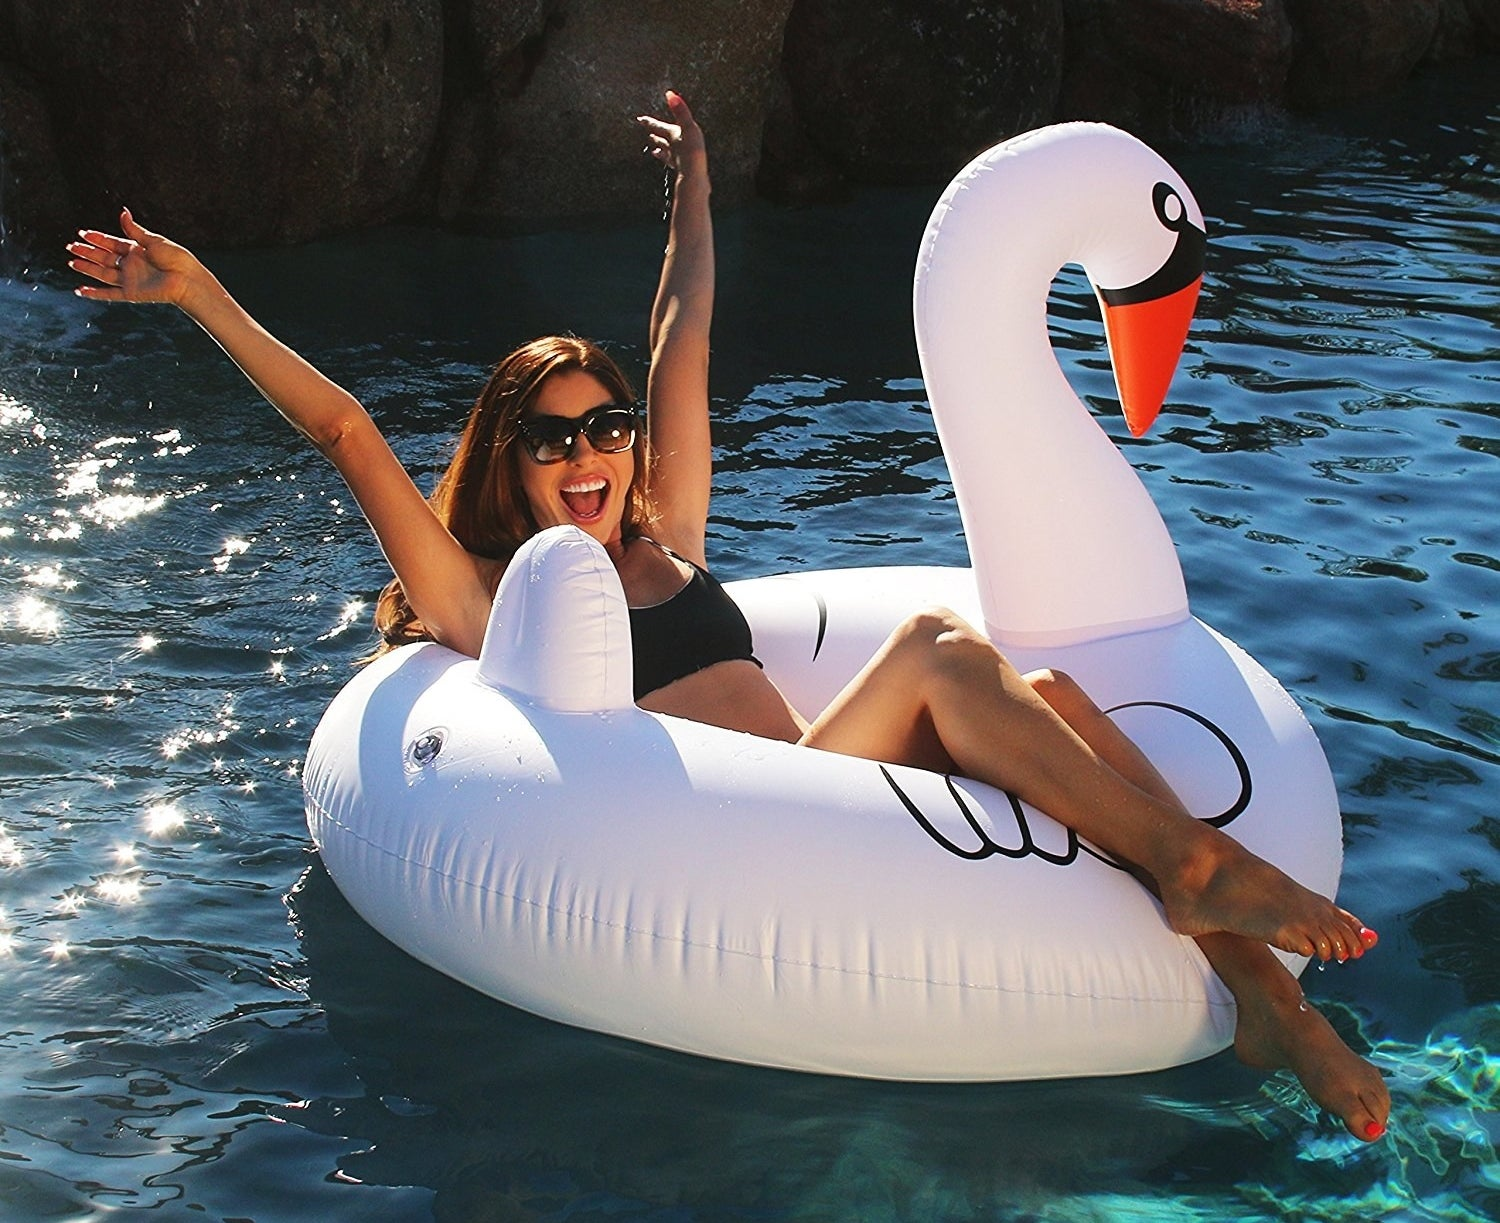 """Promising review: """"Buy it. You cannot go wrong with this swan. All my friends want to take selfies on the swan. I've gotten to use it on several different occasions including an all-day float trip down a river. Still in great condition!"""" —Avery GeeGet it from Amazon for $19.99."""